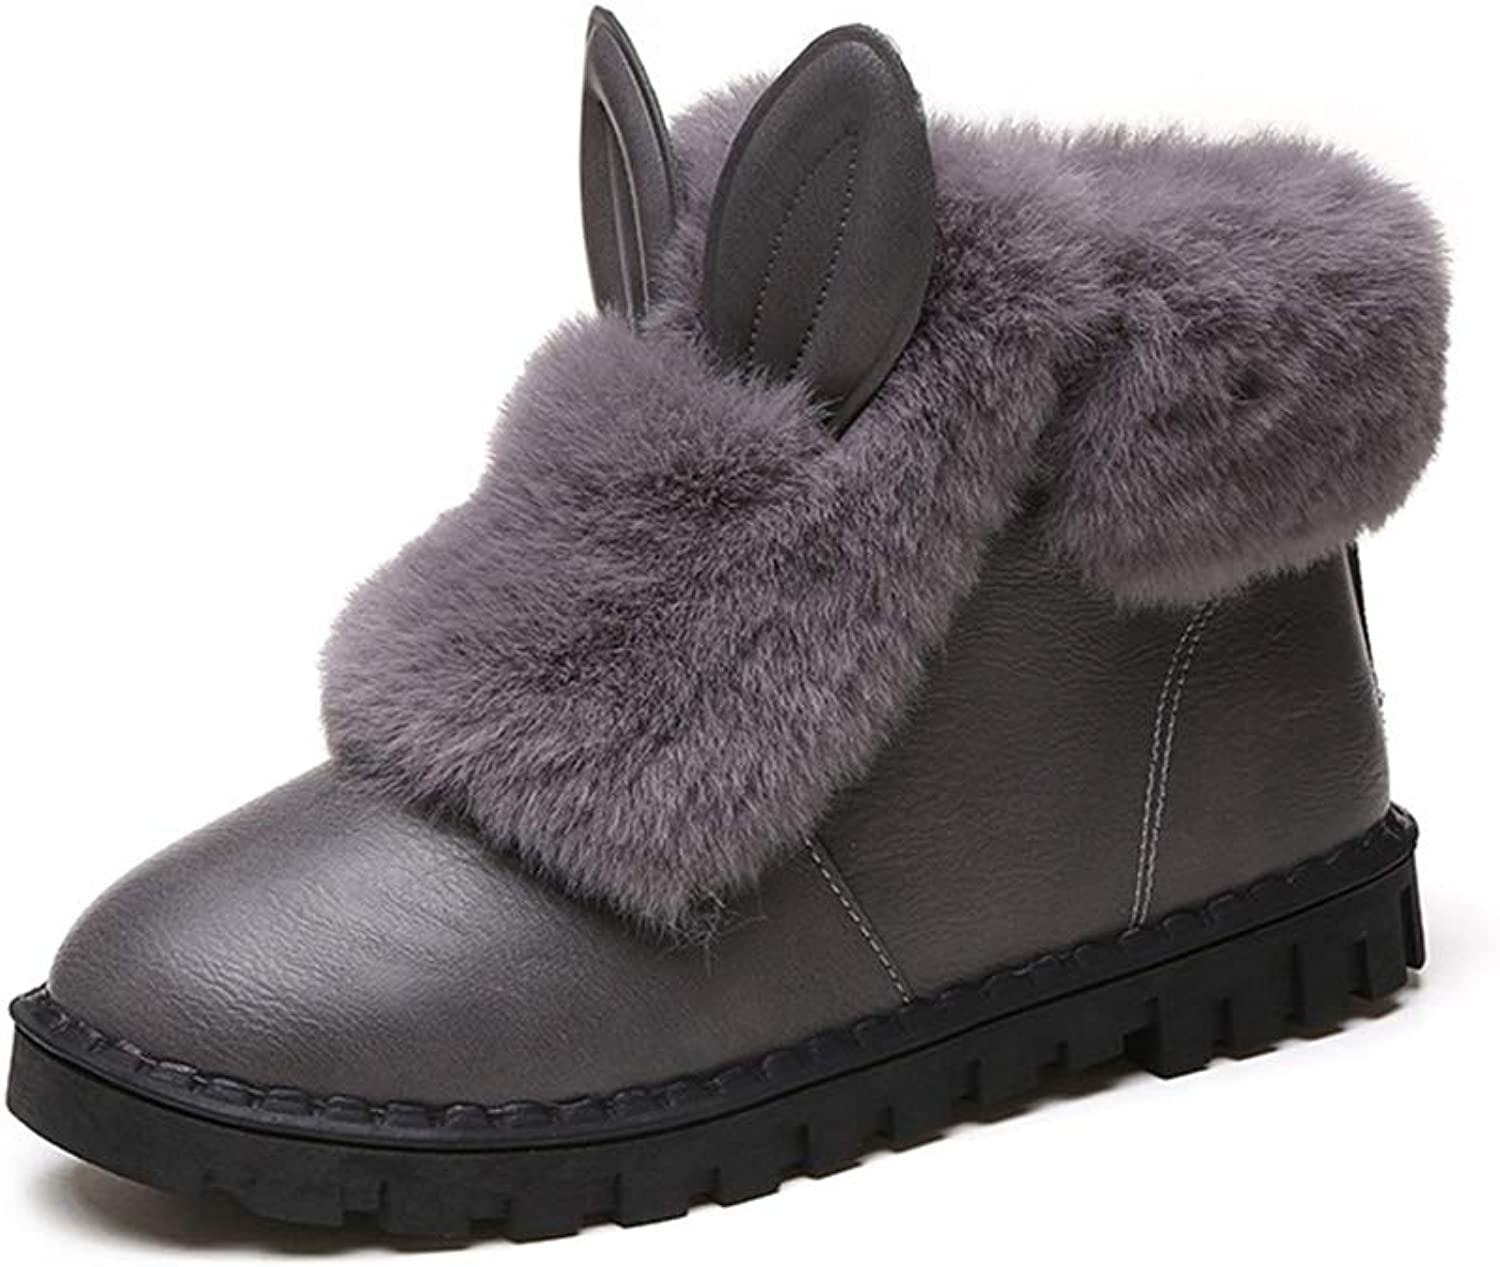 Cici shoes Fur Booties for Women, Sunyastor Women Boots Slip-On Soft Snow Boots Flat Winter Fur Lined Ankle Boots shoes